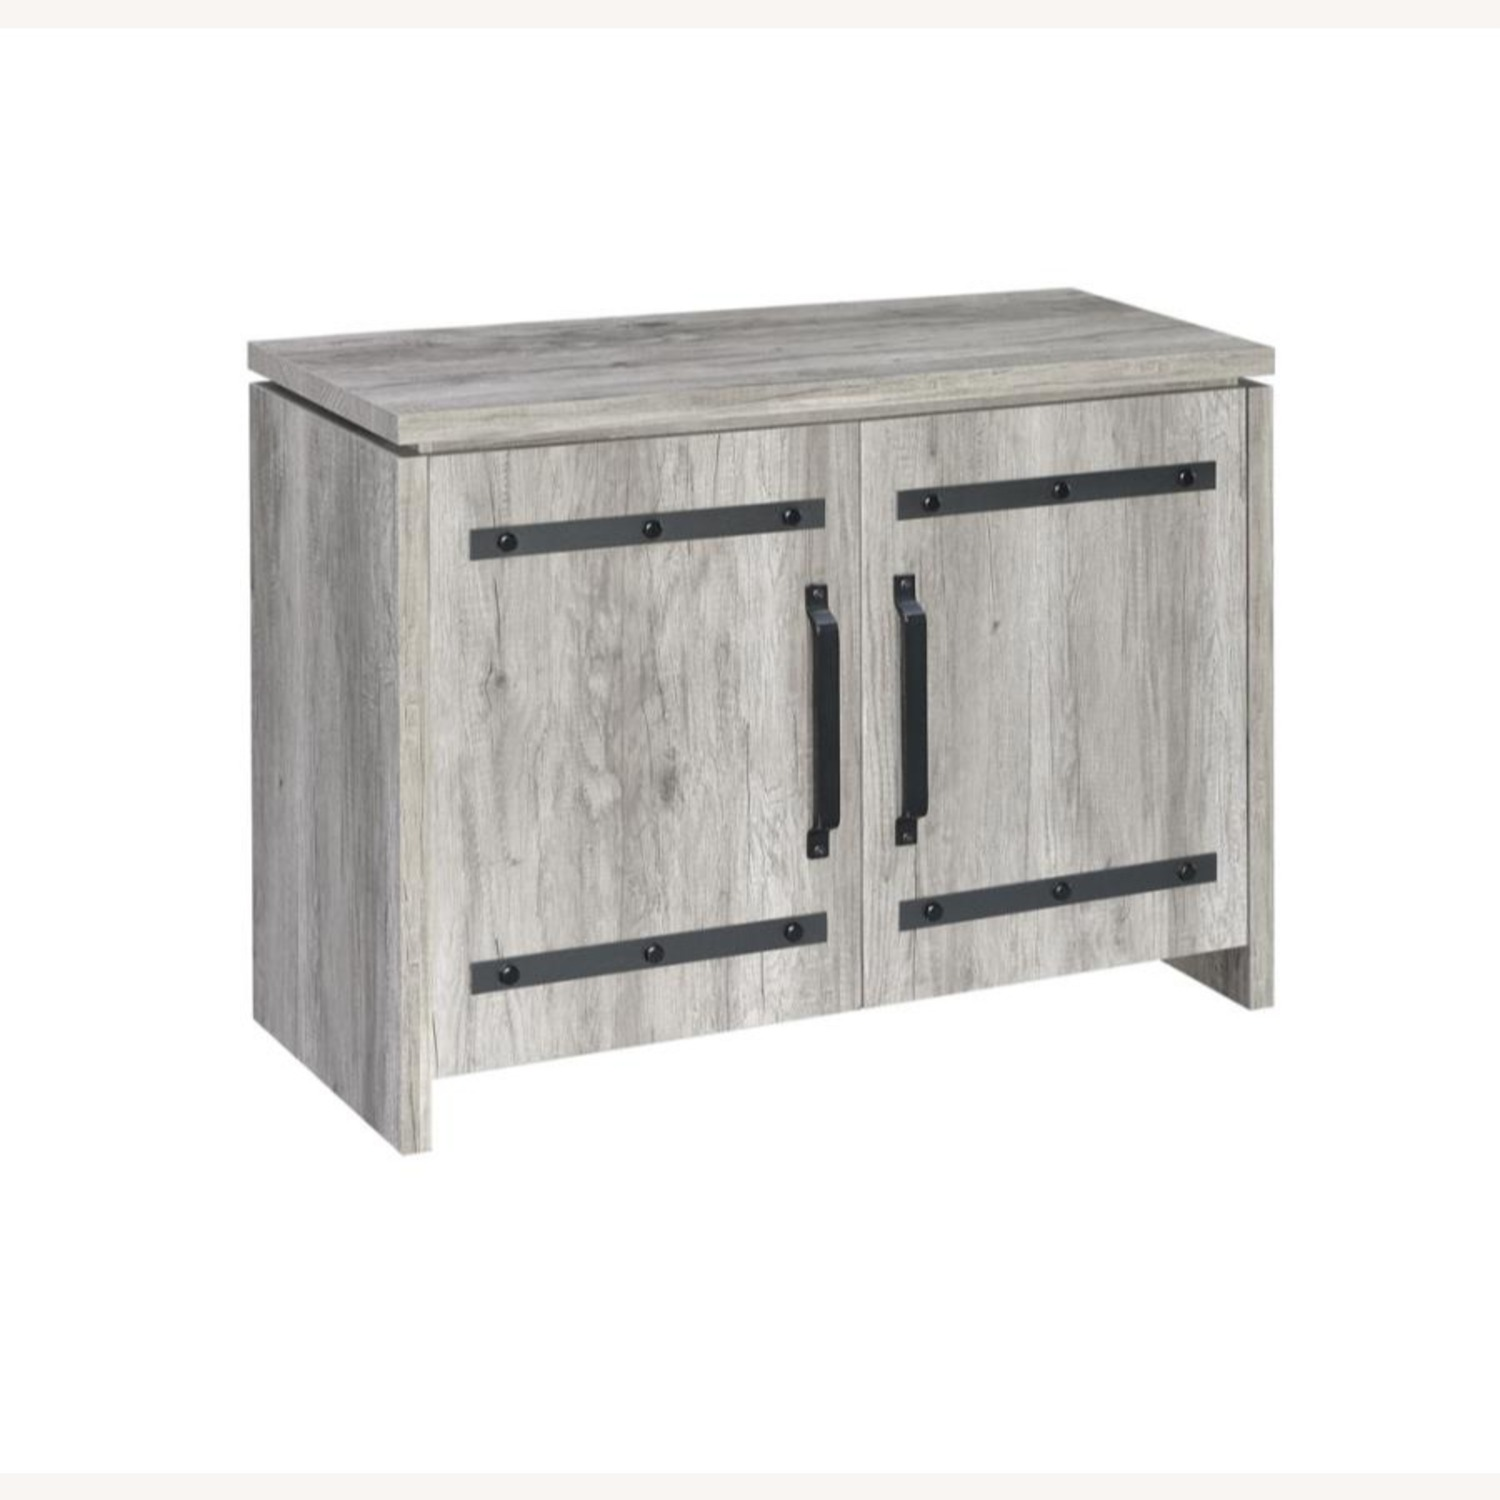 Accent Cabinet In Grey Driftwood W/ Rustic Metals - image-0